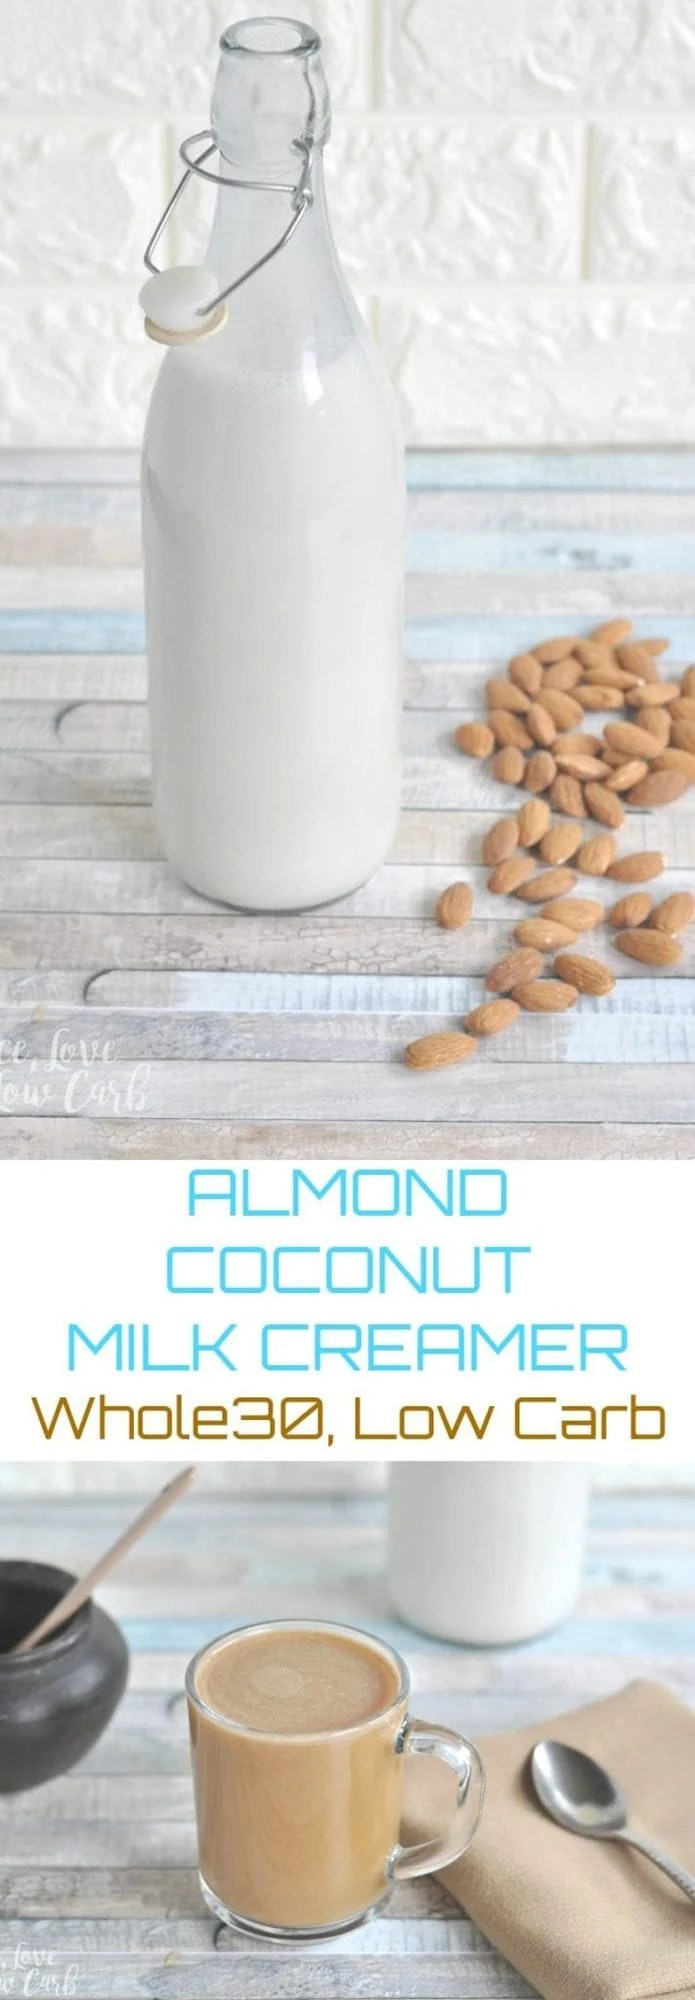 Low Carb Whole30 Almond Coconut Milk Creamer